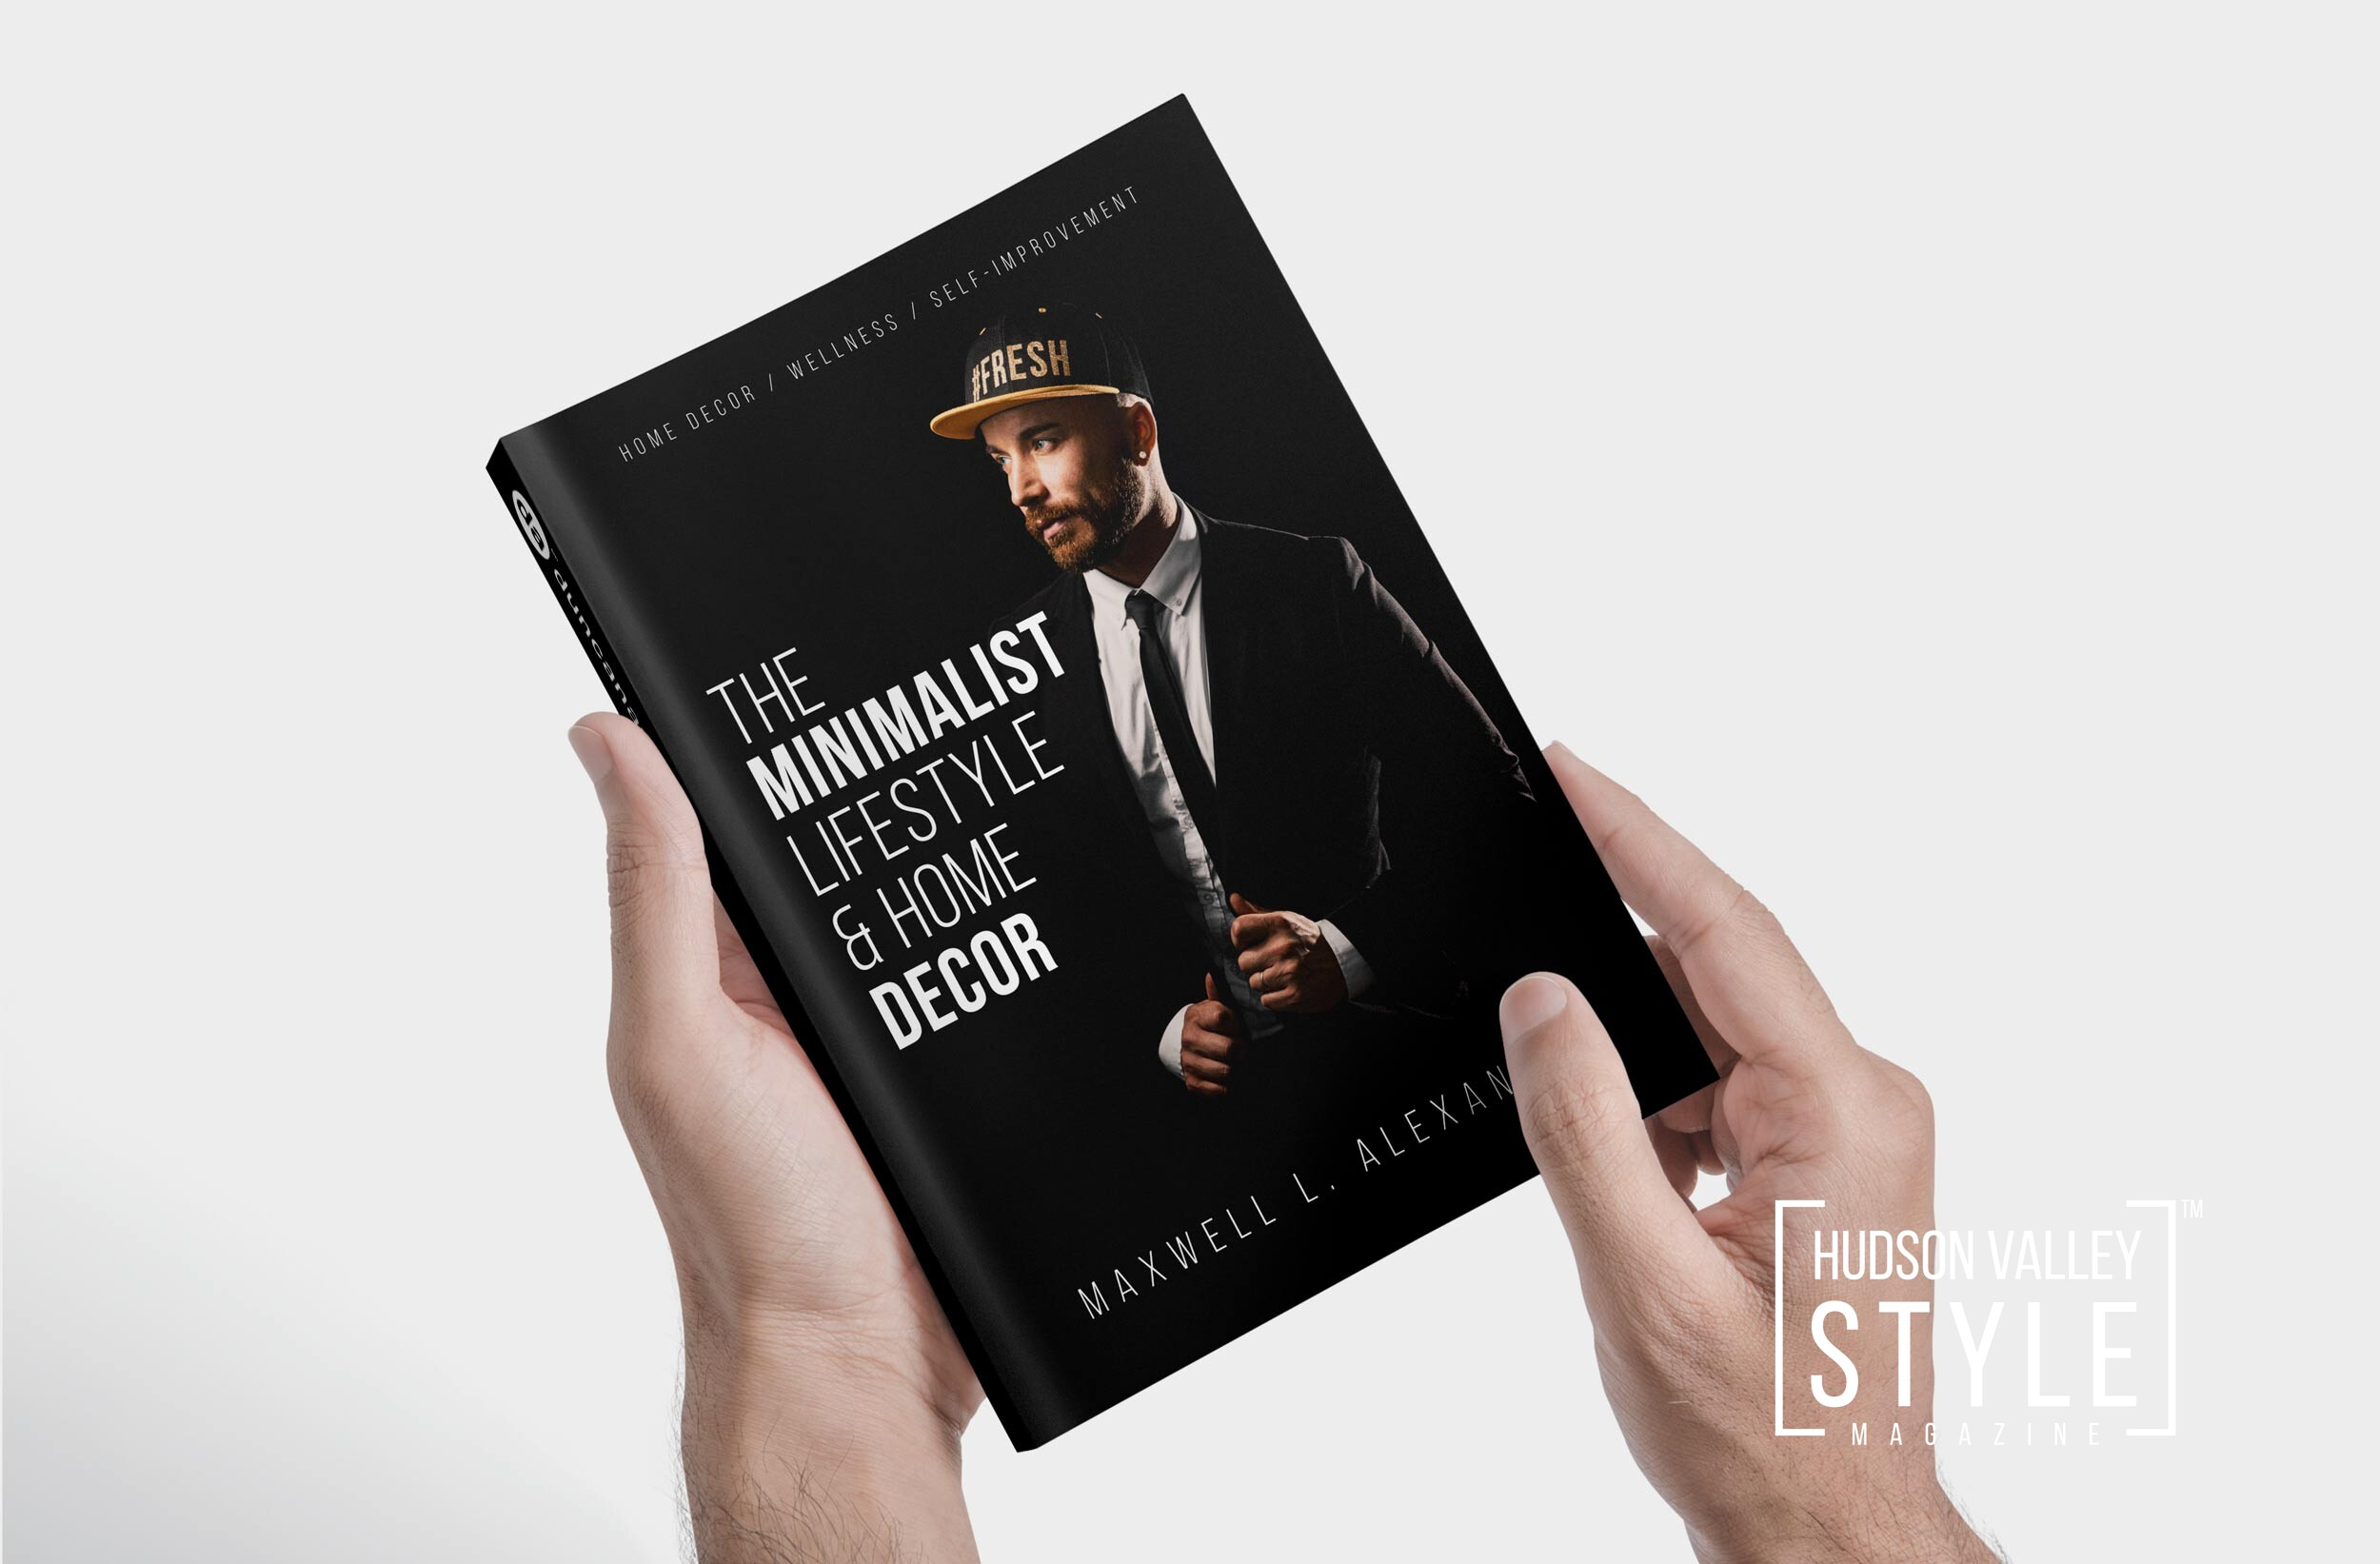 Minimalist lifestyle has gained a lot of popularity lately, especially with the Millennial generation. In this eBook you will learn how Minimalist lifestyle manifests in the home decor and your home, how to create your zen and relaxation spaces, how to sort clutter and get organized, how to decorate your home with minimal decor items yet make it impactful and aesthetically pleasing and so much more!